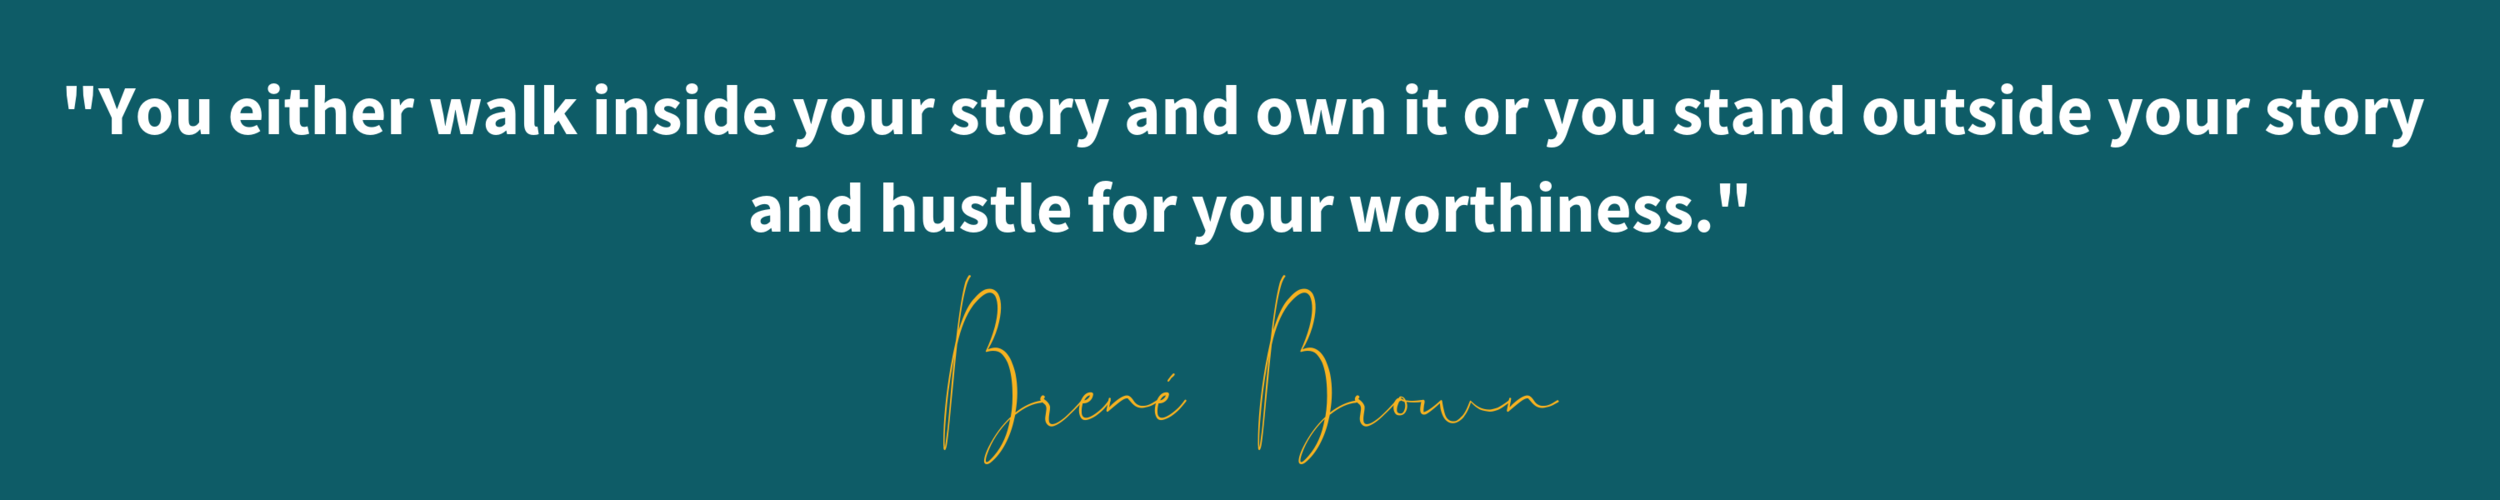 _You either walk inside your story and own it or you stand outside your story and hustle for your worthiness._ - Brené Brown (1).png